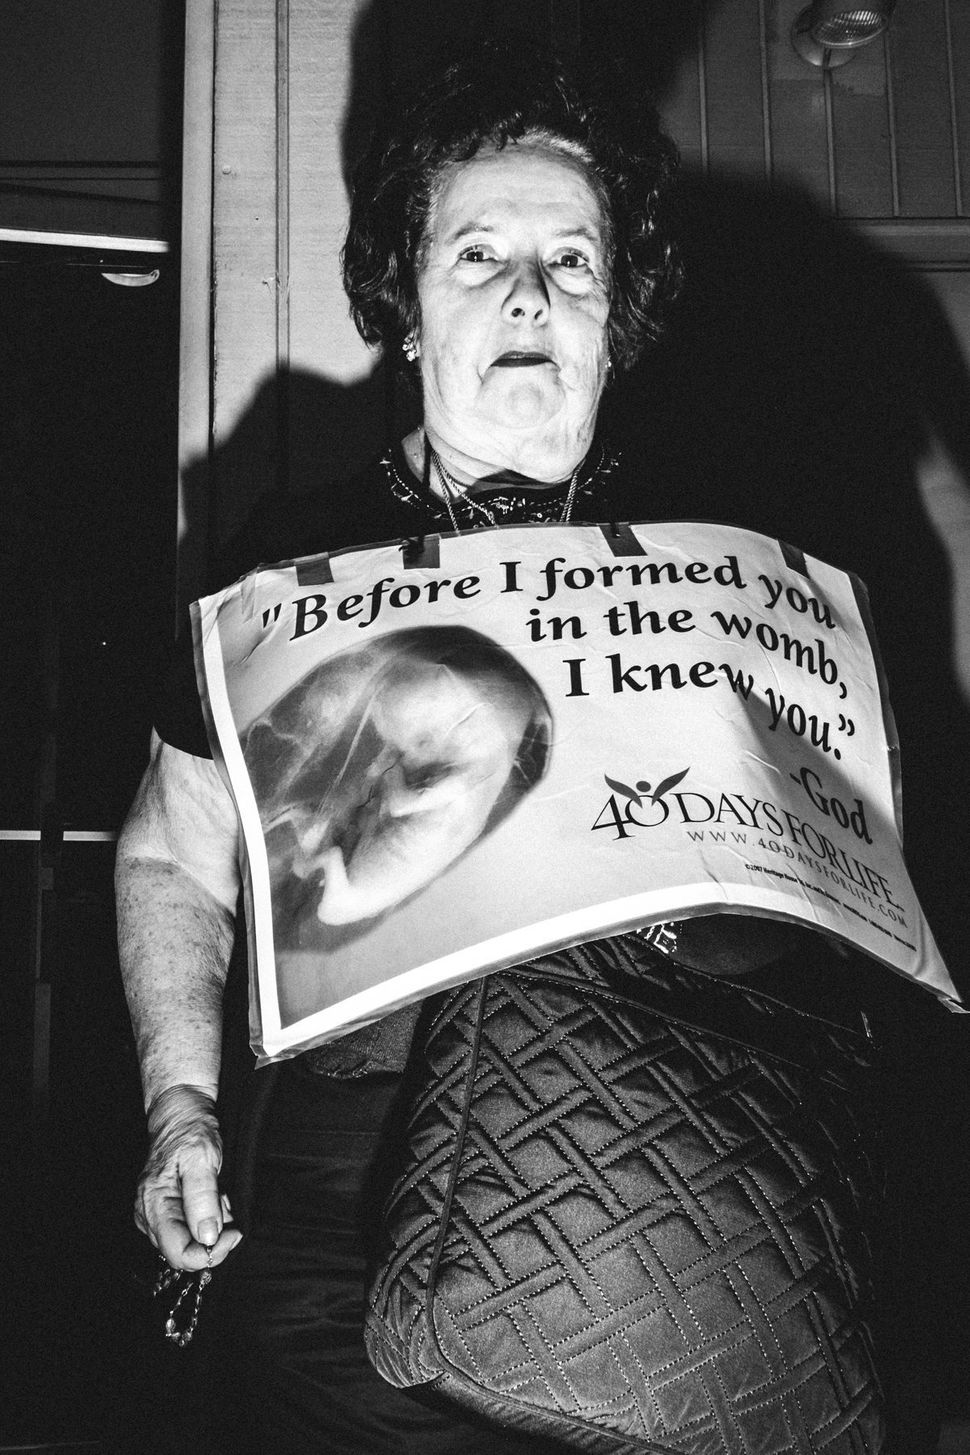 October 7th, 2015 - 40 Days for Life protester outside of Planned Parenthood on Liberty Avenue in Pittsburgh, PA.